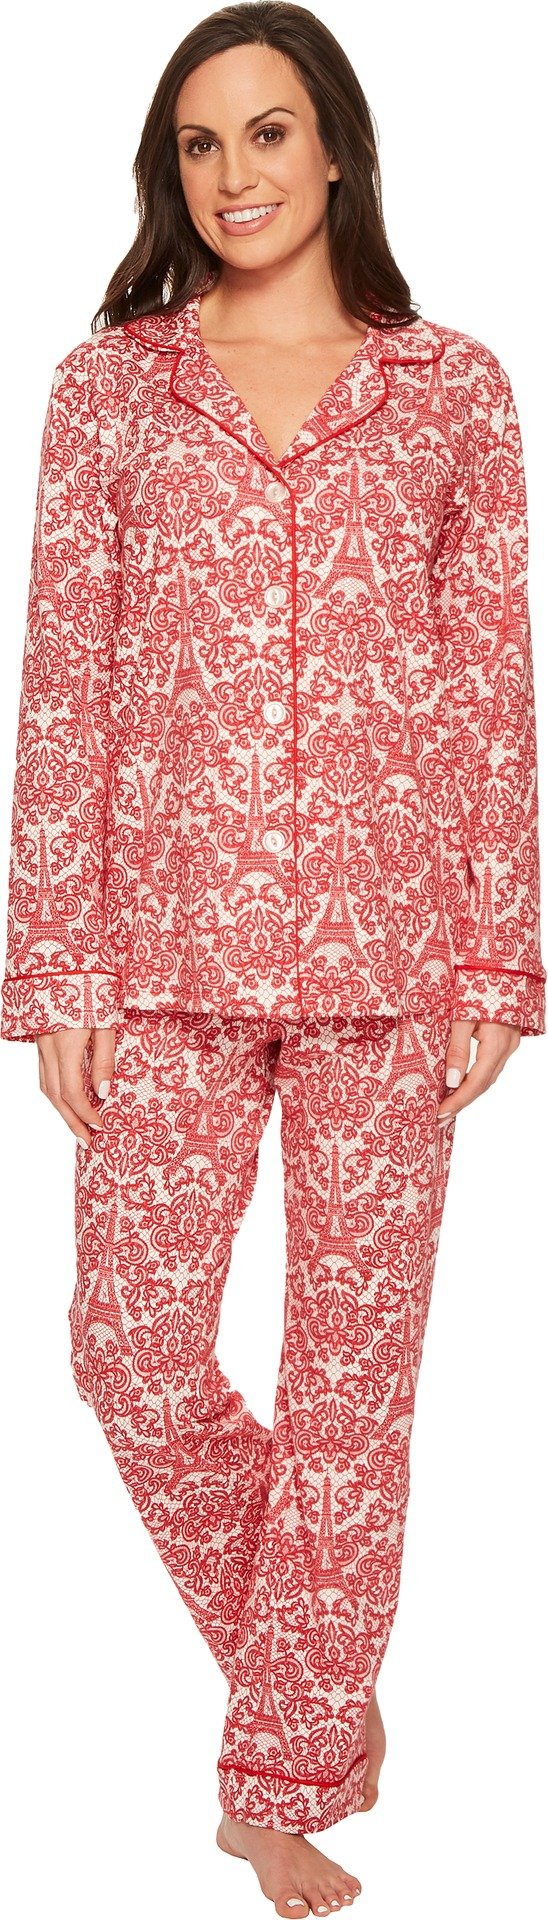 BedHead Women's Long Sleeve Classic Stretch Knit Pajama Set Rouge French Lace Medium by BedHead Pajamas (Image #1)